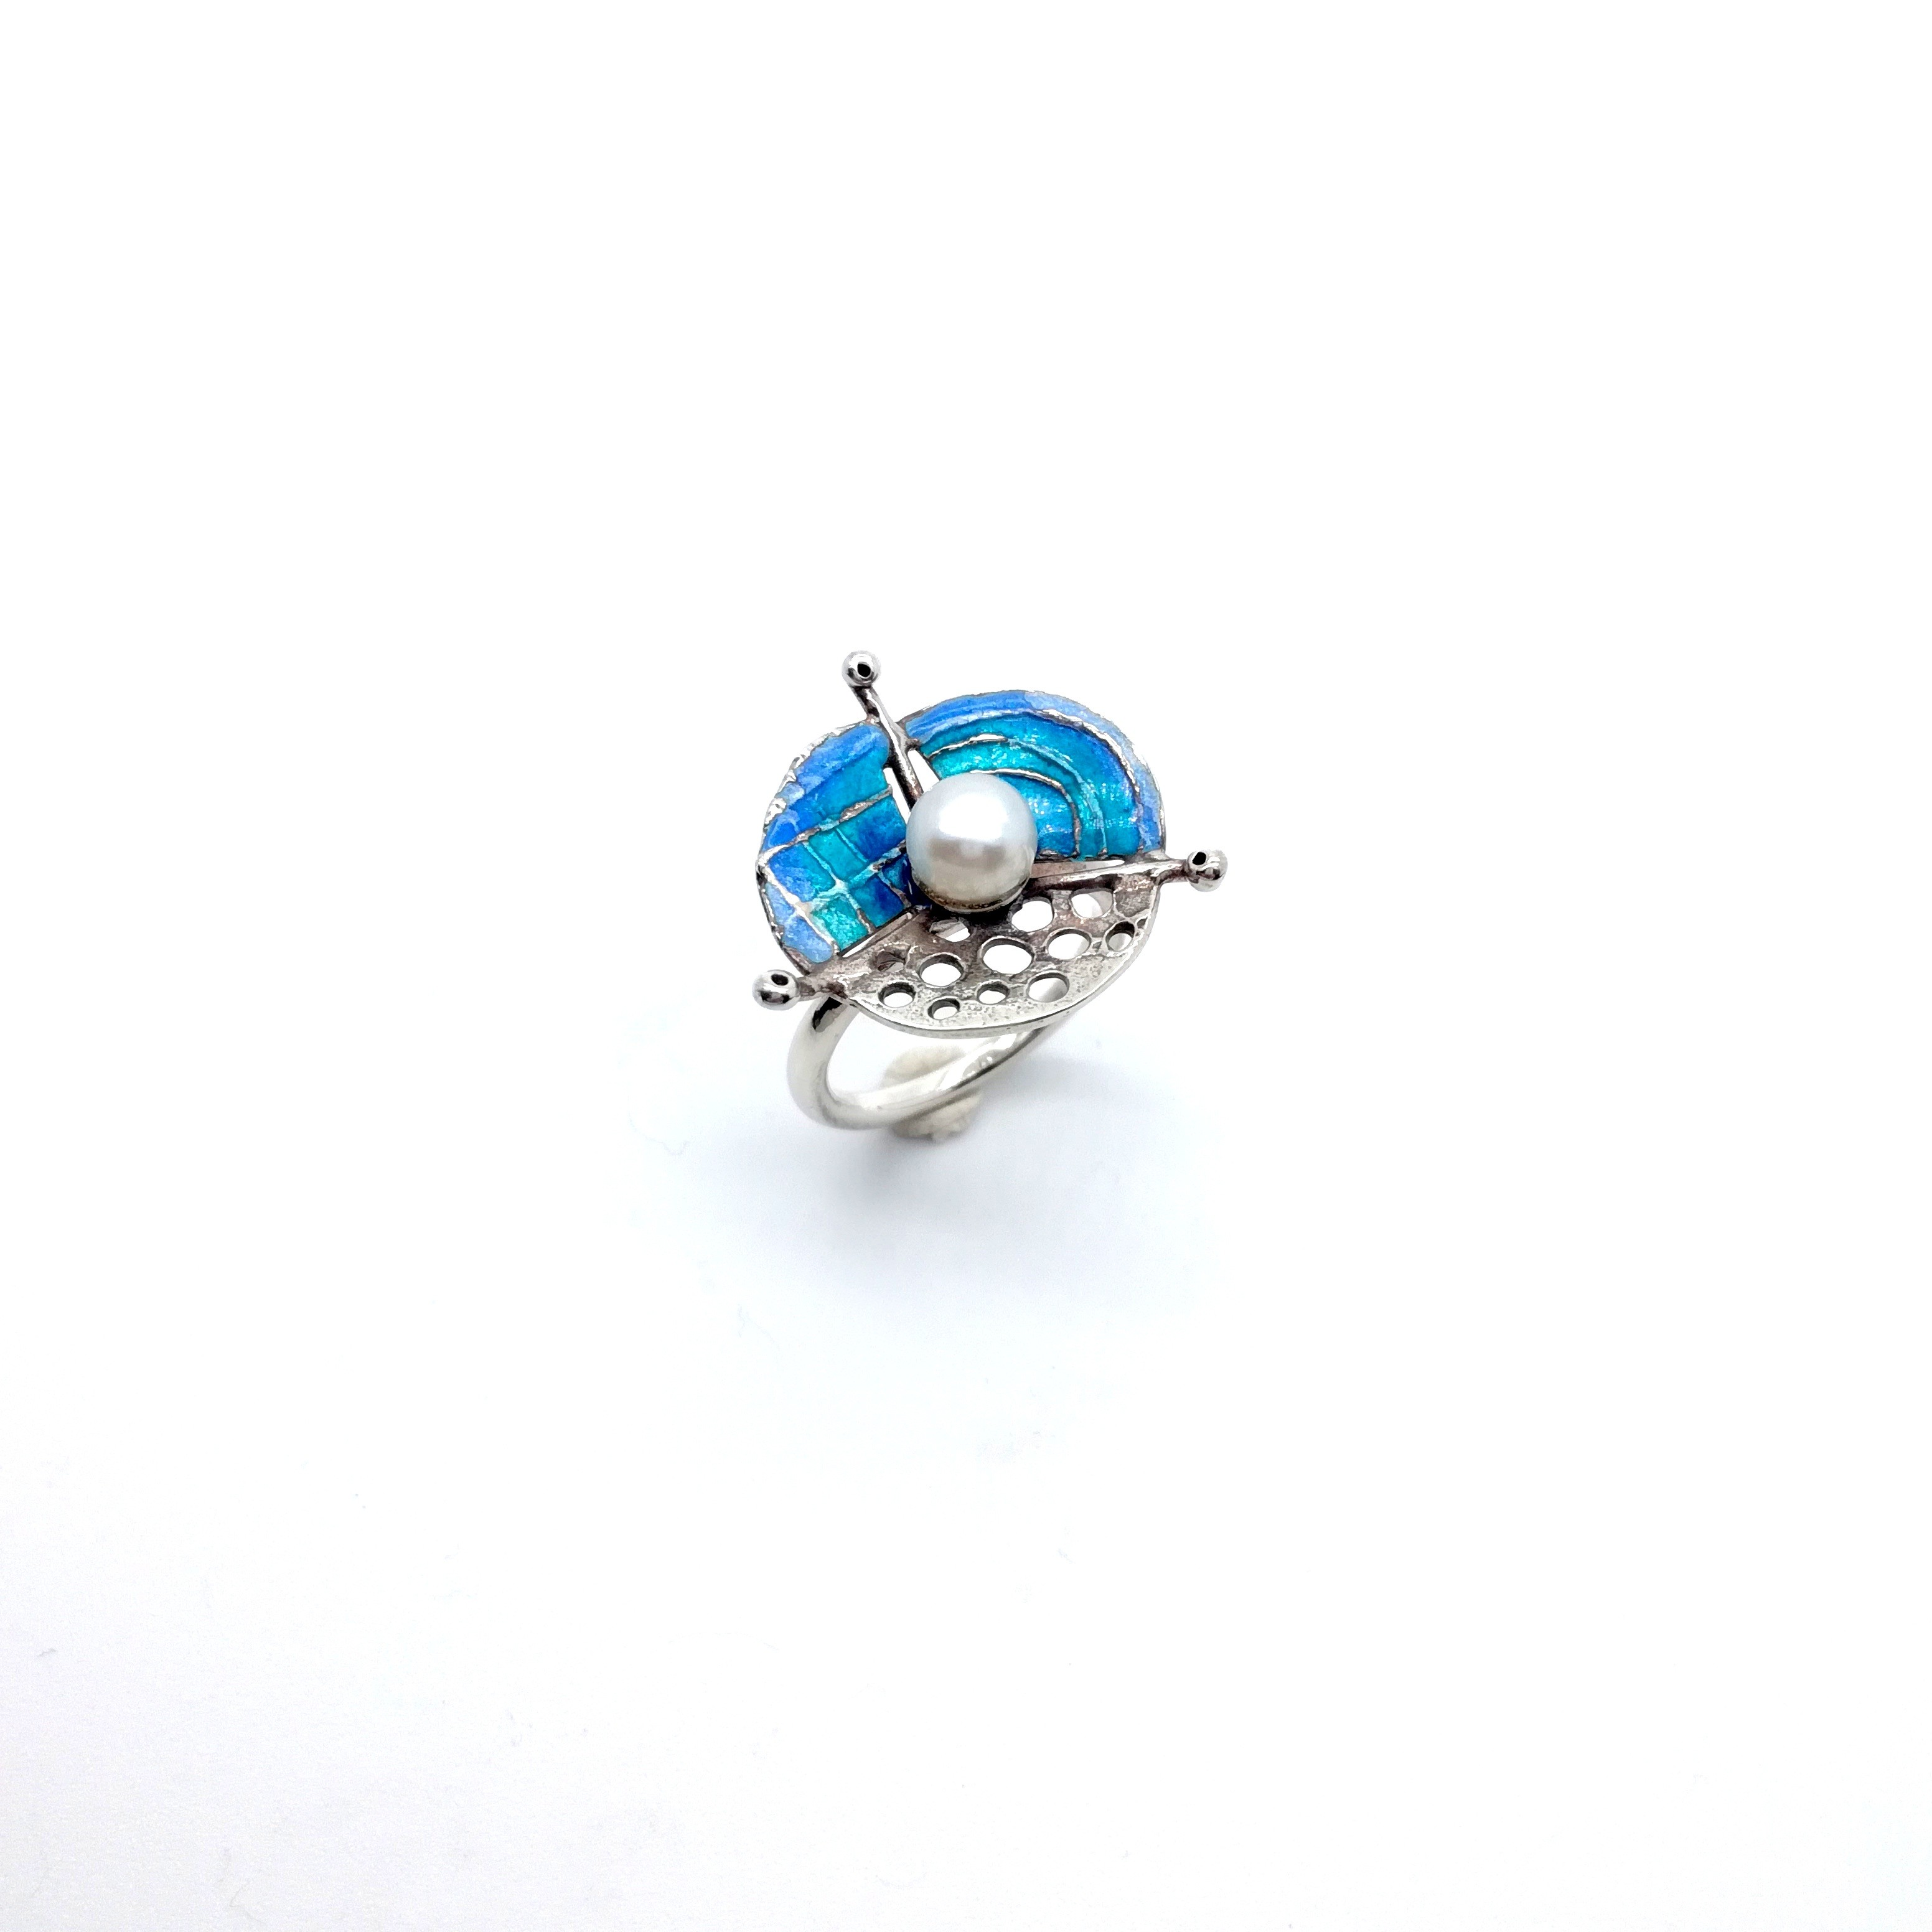 Silver ring 925 enameled with blue colors